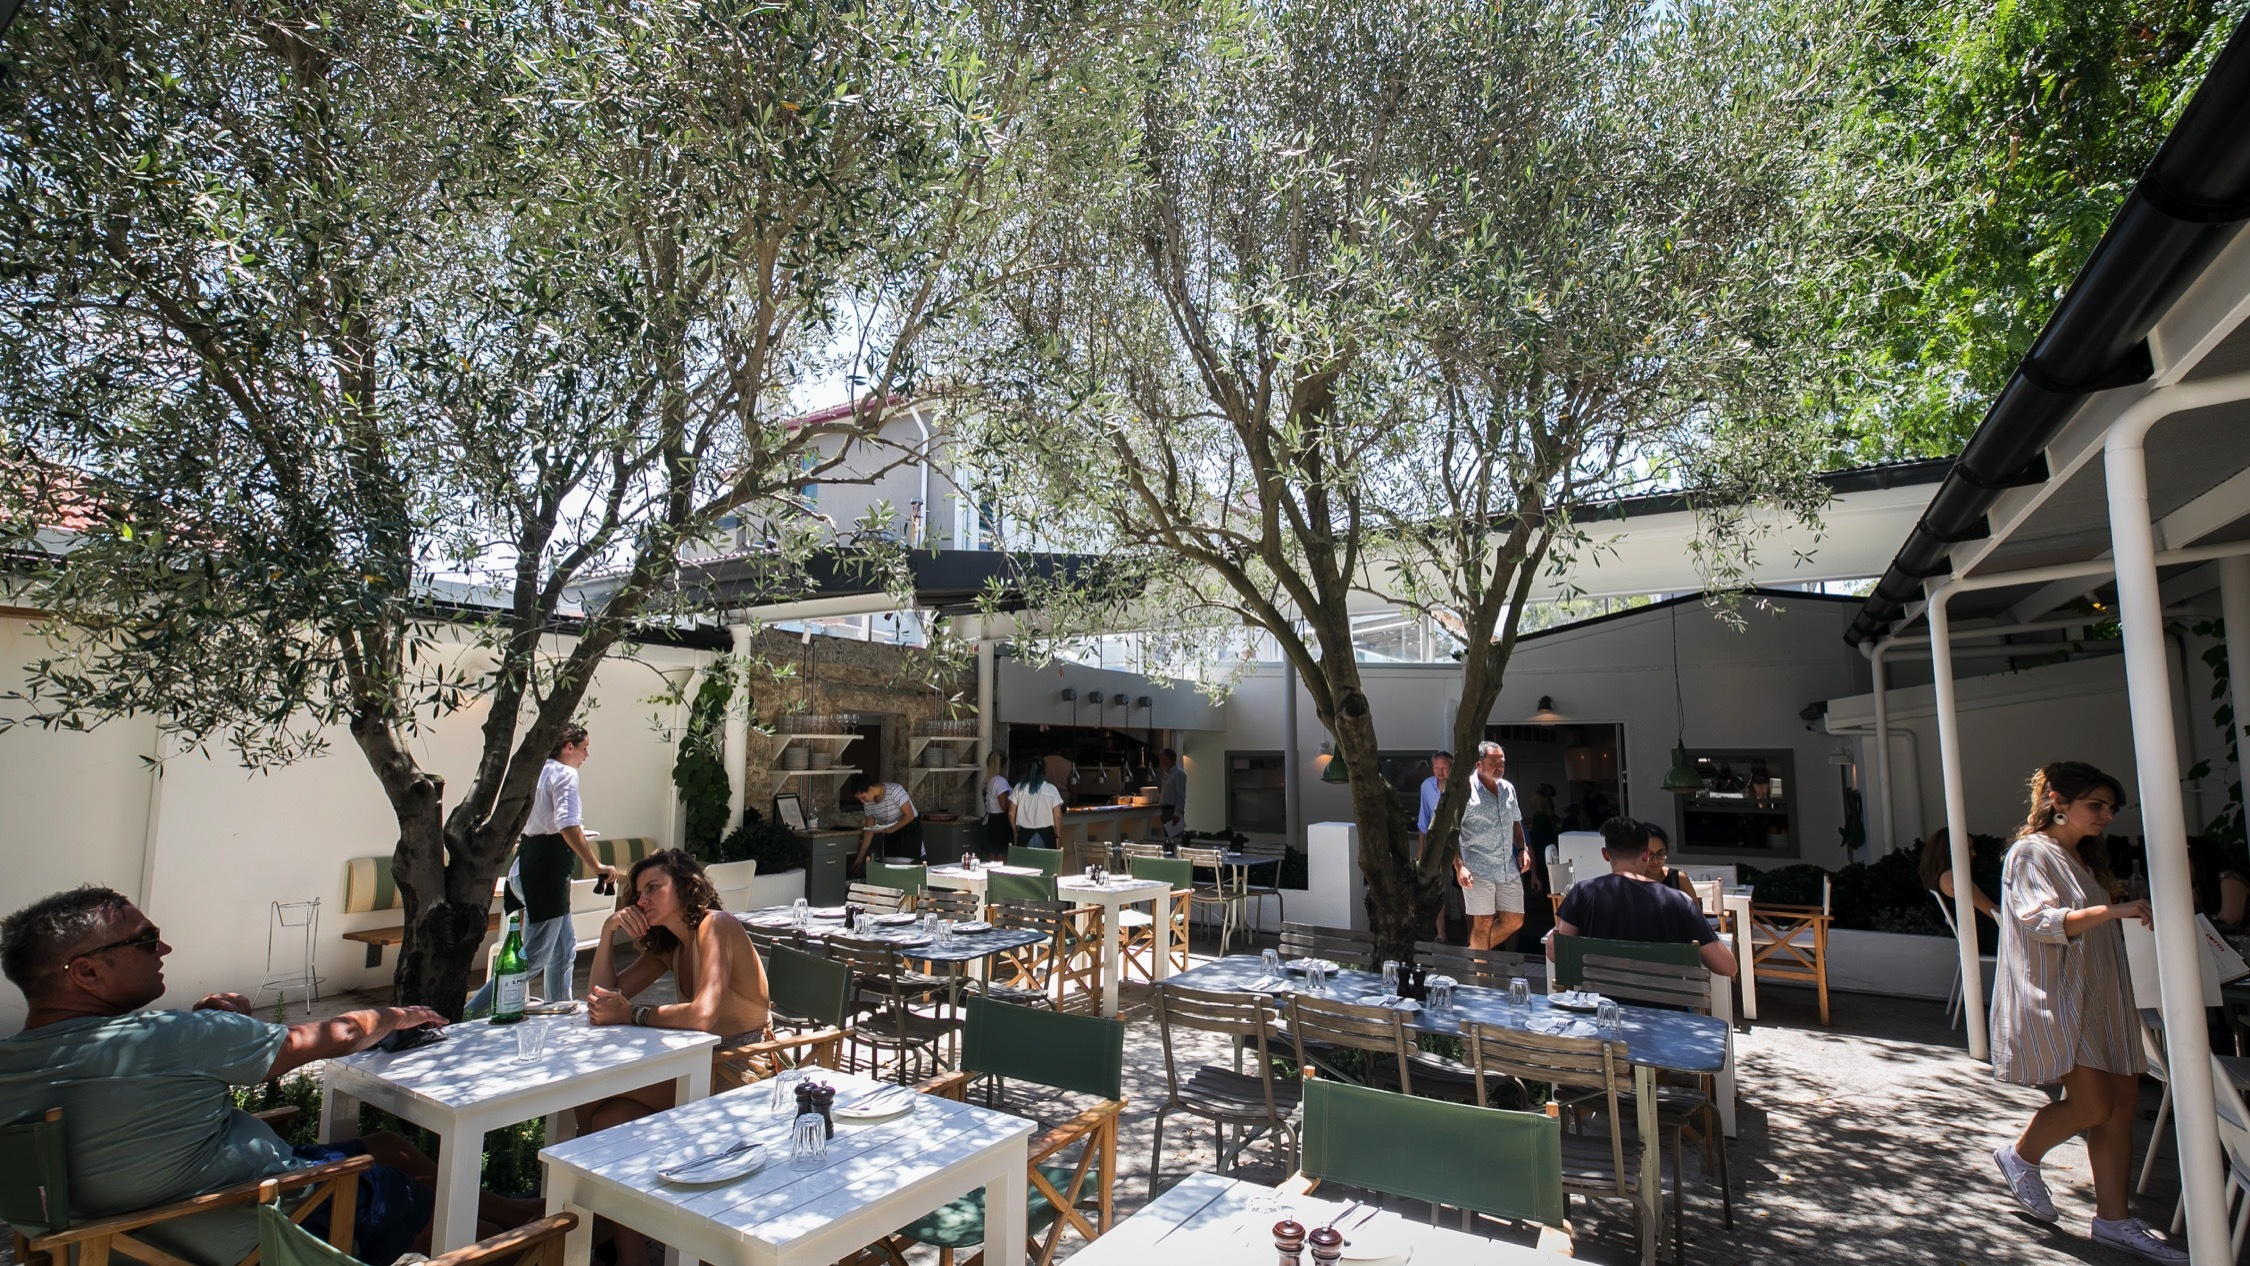 The Best Alfresco Dining Spots In Sydney